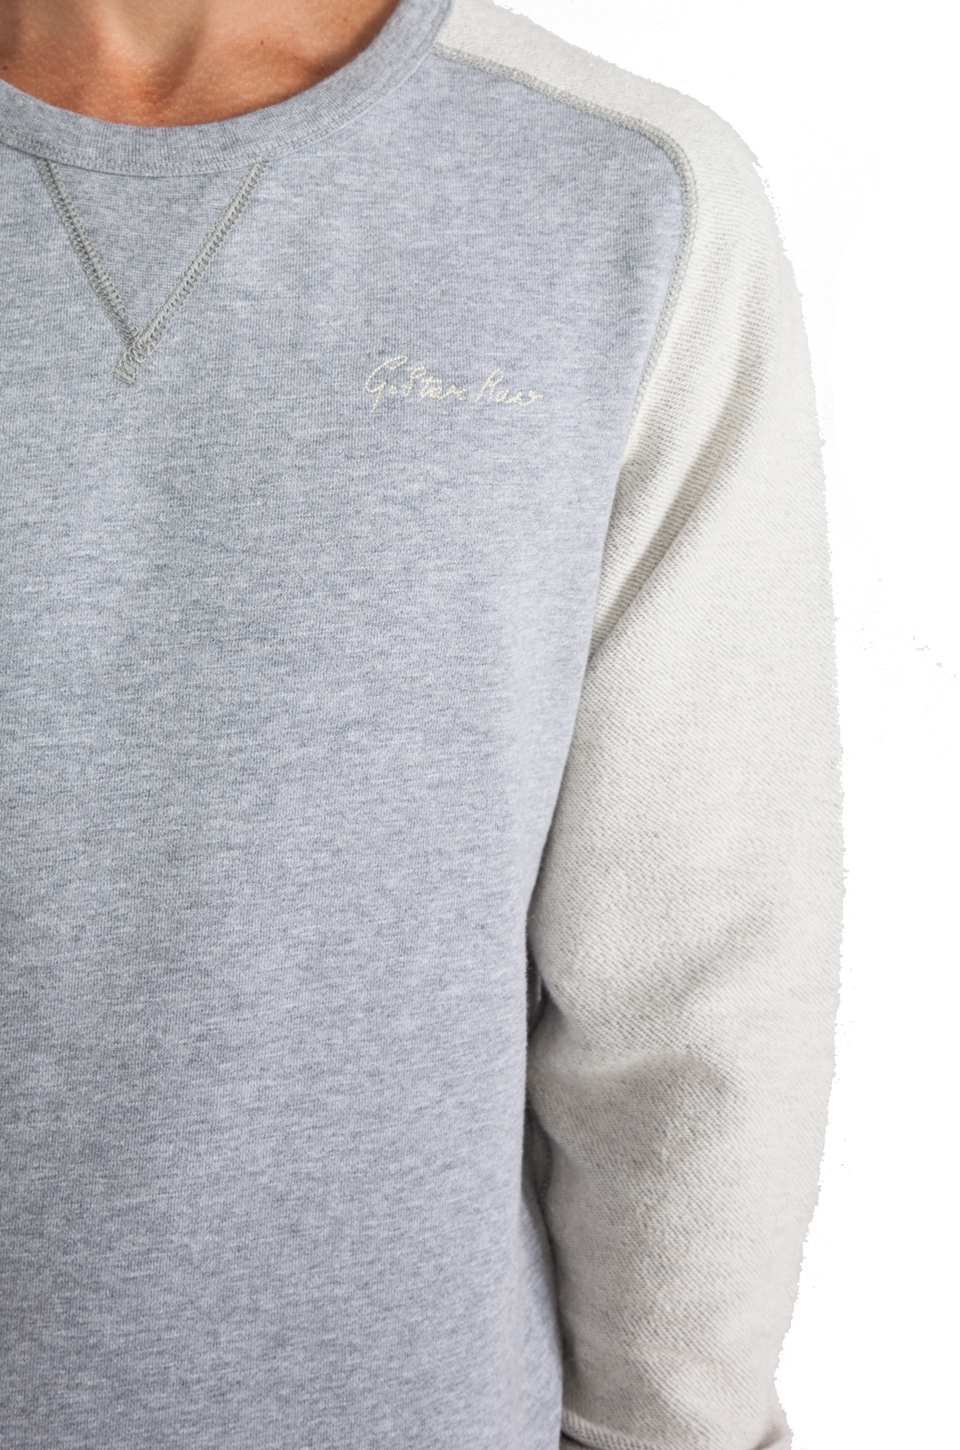 G-Star Ace Saddler Sweatshirt in Grey Heather